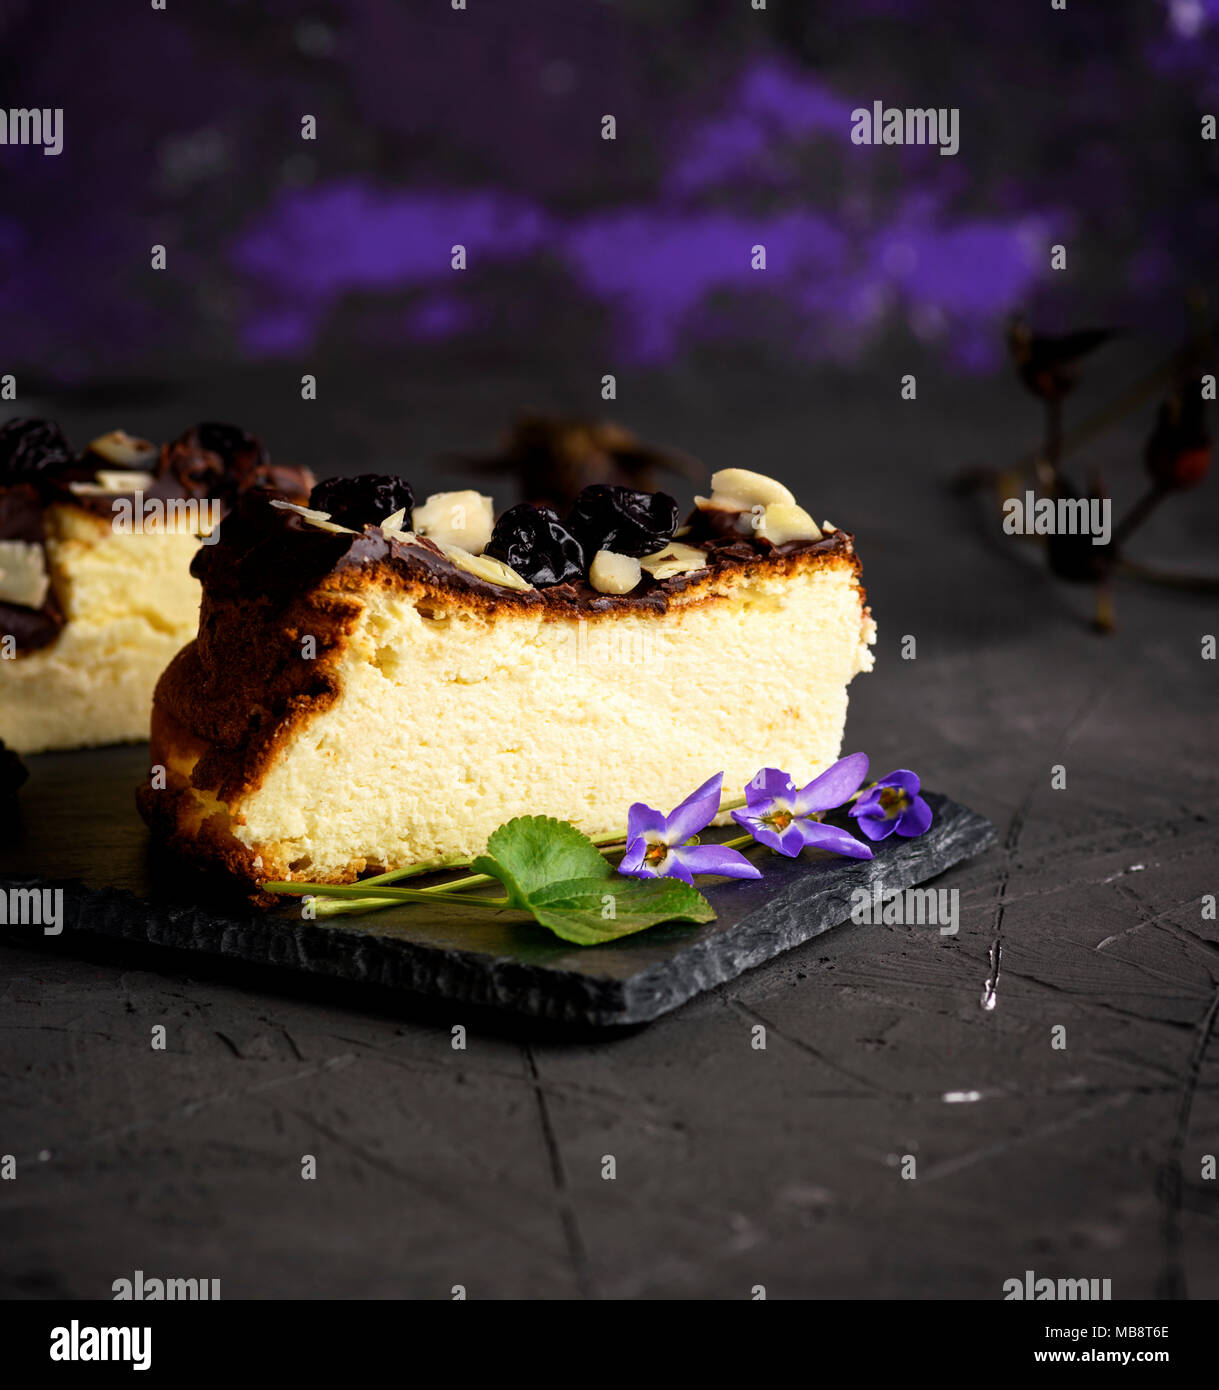 a piece of cheesecake on a black background sprinkled with almond shavings and dry cherries, close up - Stock Image